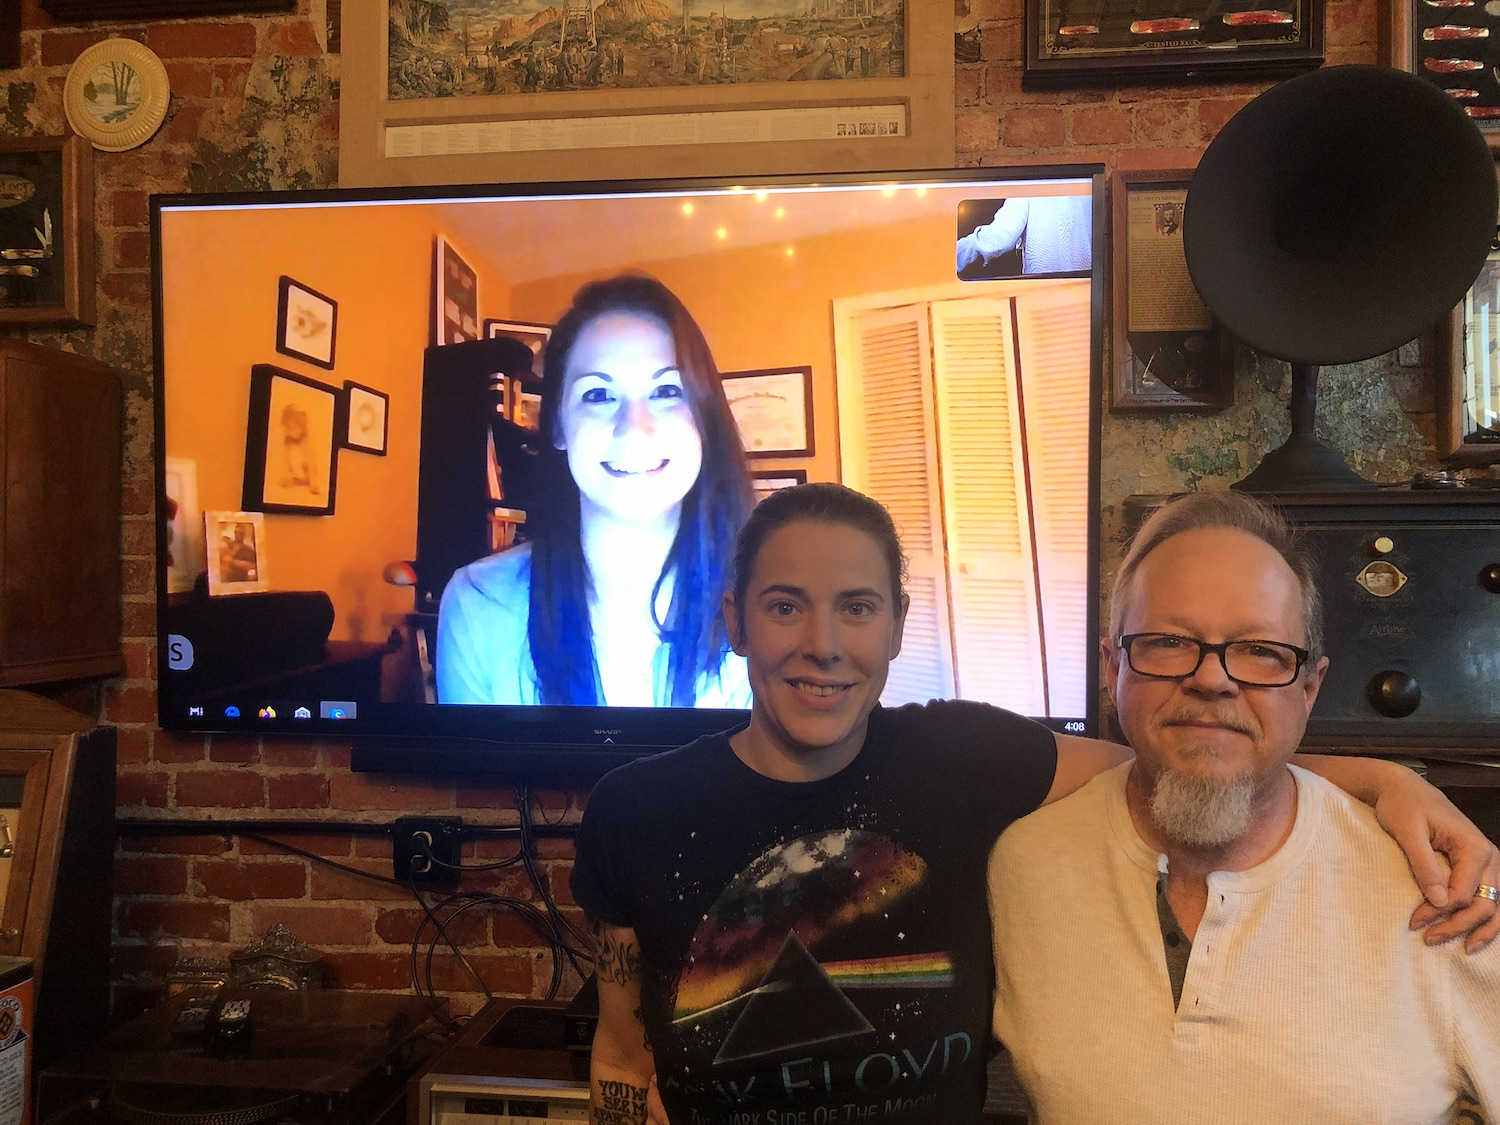 Leah Cole (in the monitor), Lindsay Allison, Jim McGee post during a video conference at Signs of the Times.